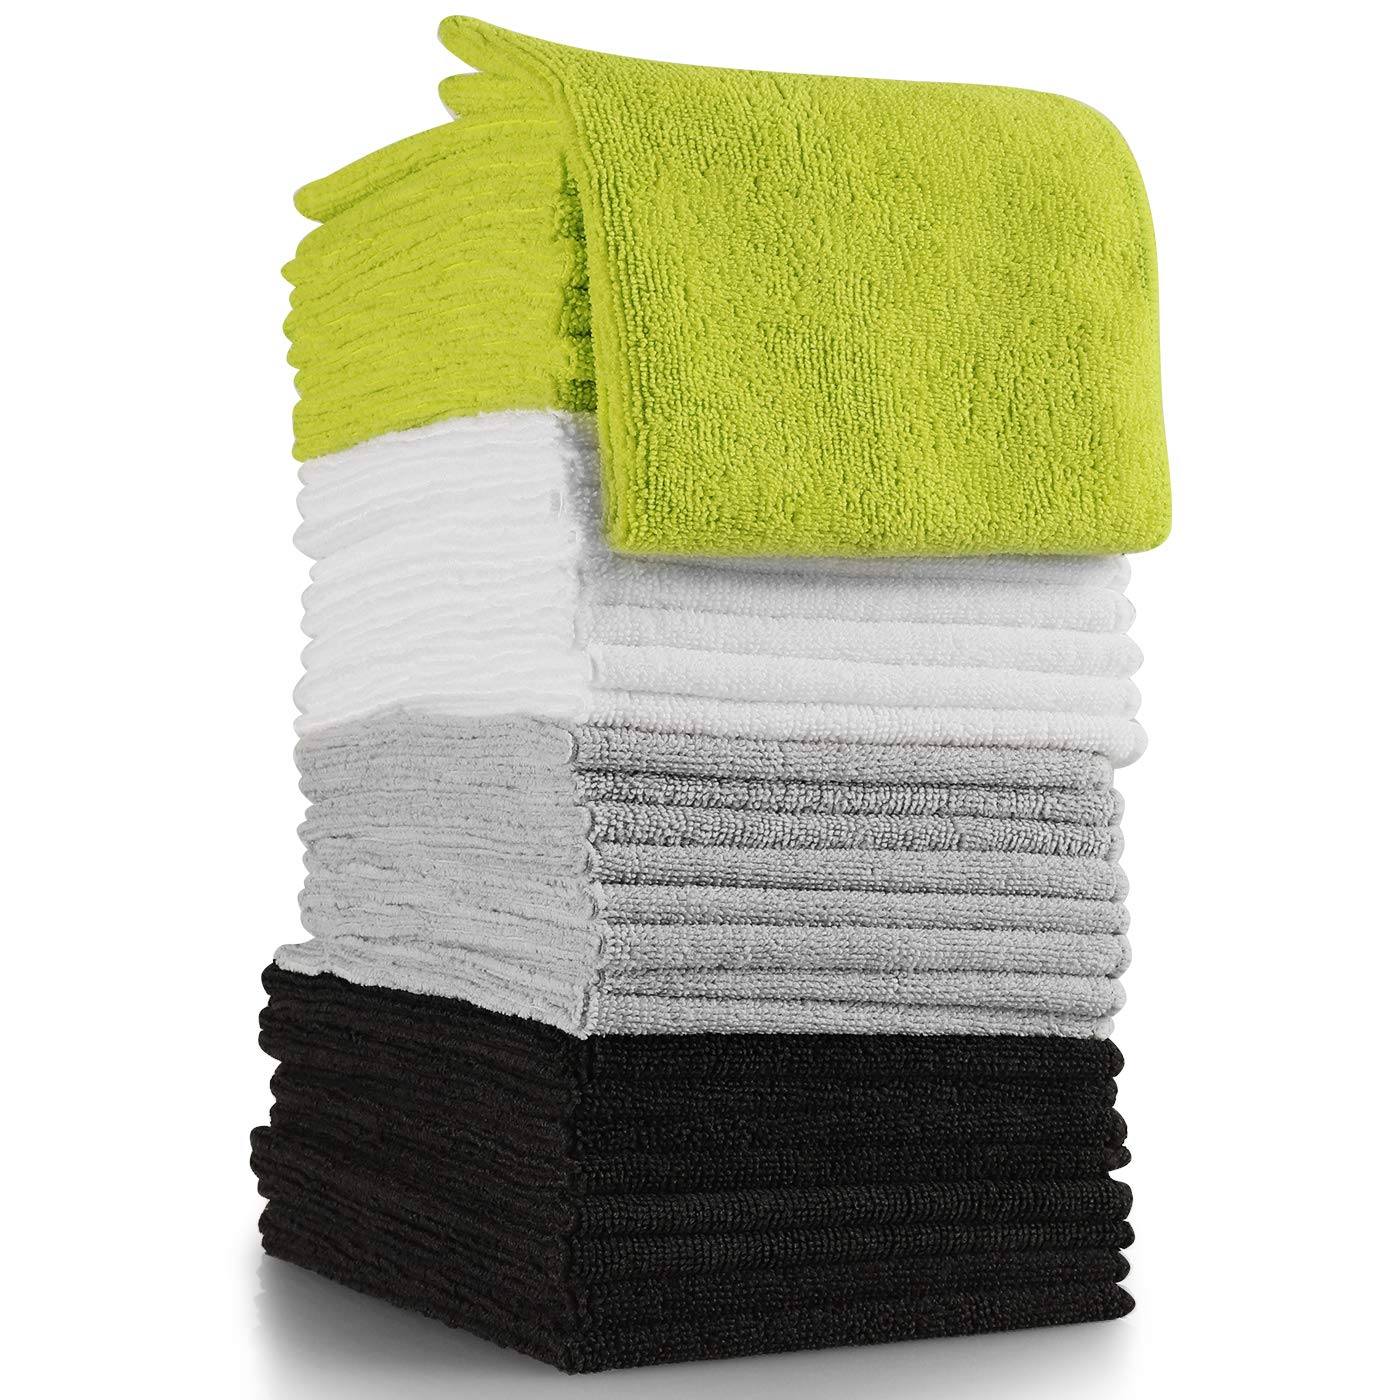 OxGord Microfiber Cleaning Cloth 64pc Pack Bulk Duster Rag Sponge for Car Wash Auto Care Thick Large for Glasses Kitchen Dish